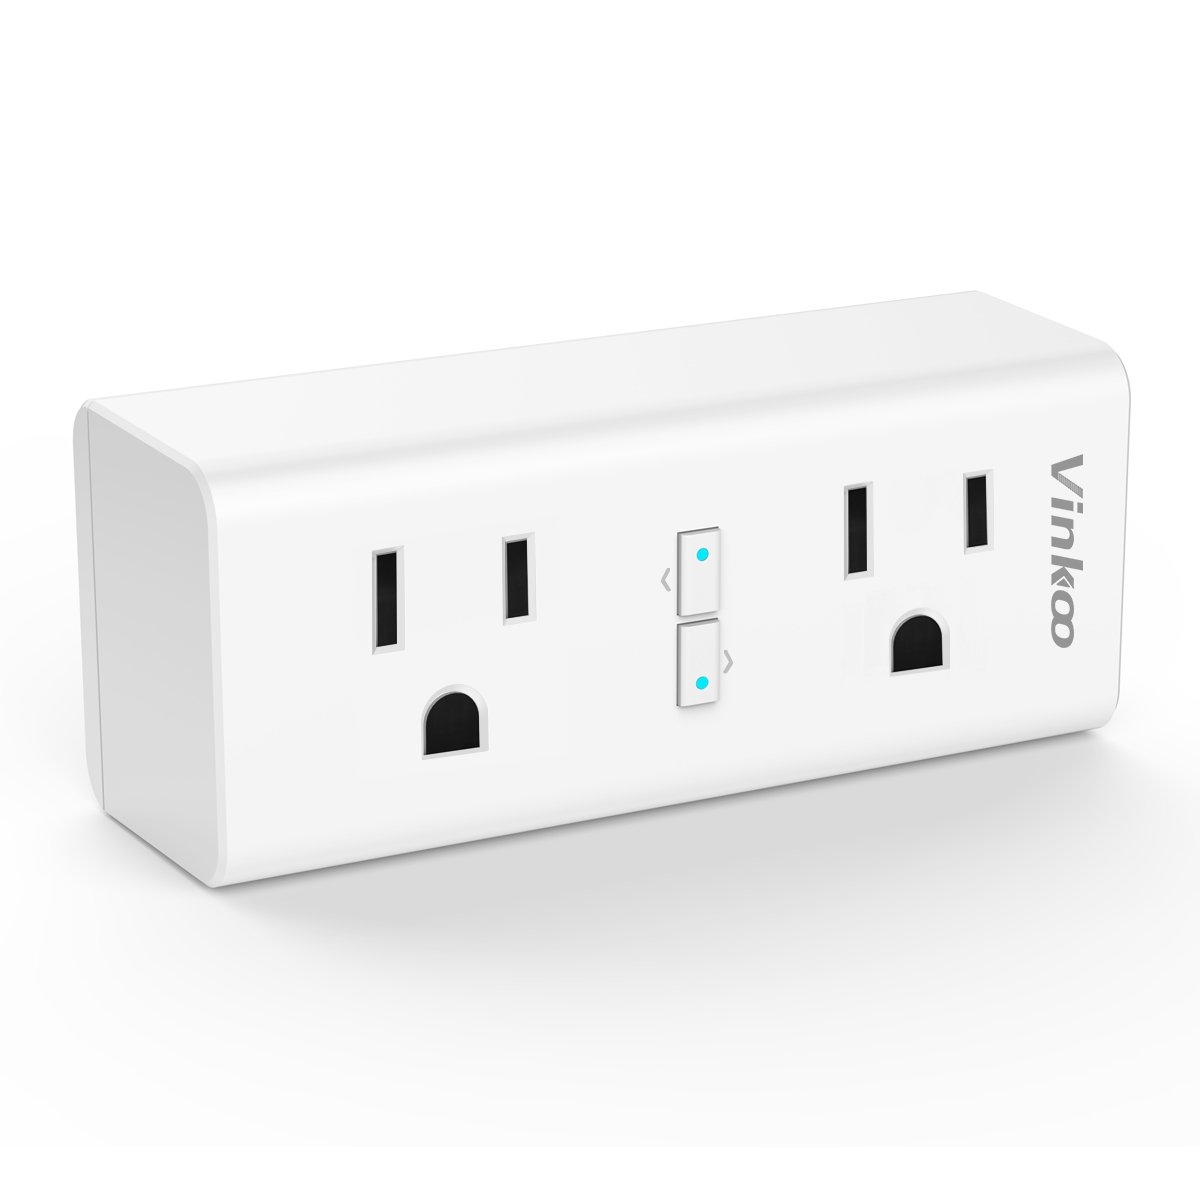 Smart Plug VinKoo Wifi Outlet 2 in 1 Smart Outlet Compatible with Alexa and IFTTT Google Home No Hub Required with Timer Energy Monitoring Can Work Individually or in Groups Nanx – 2 Pack